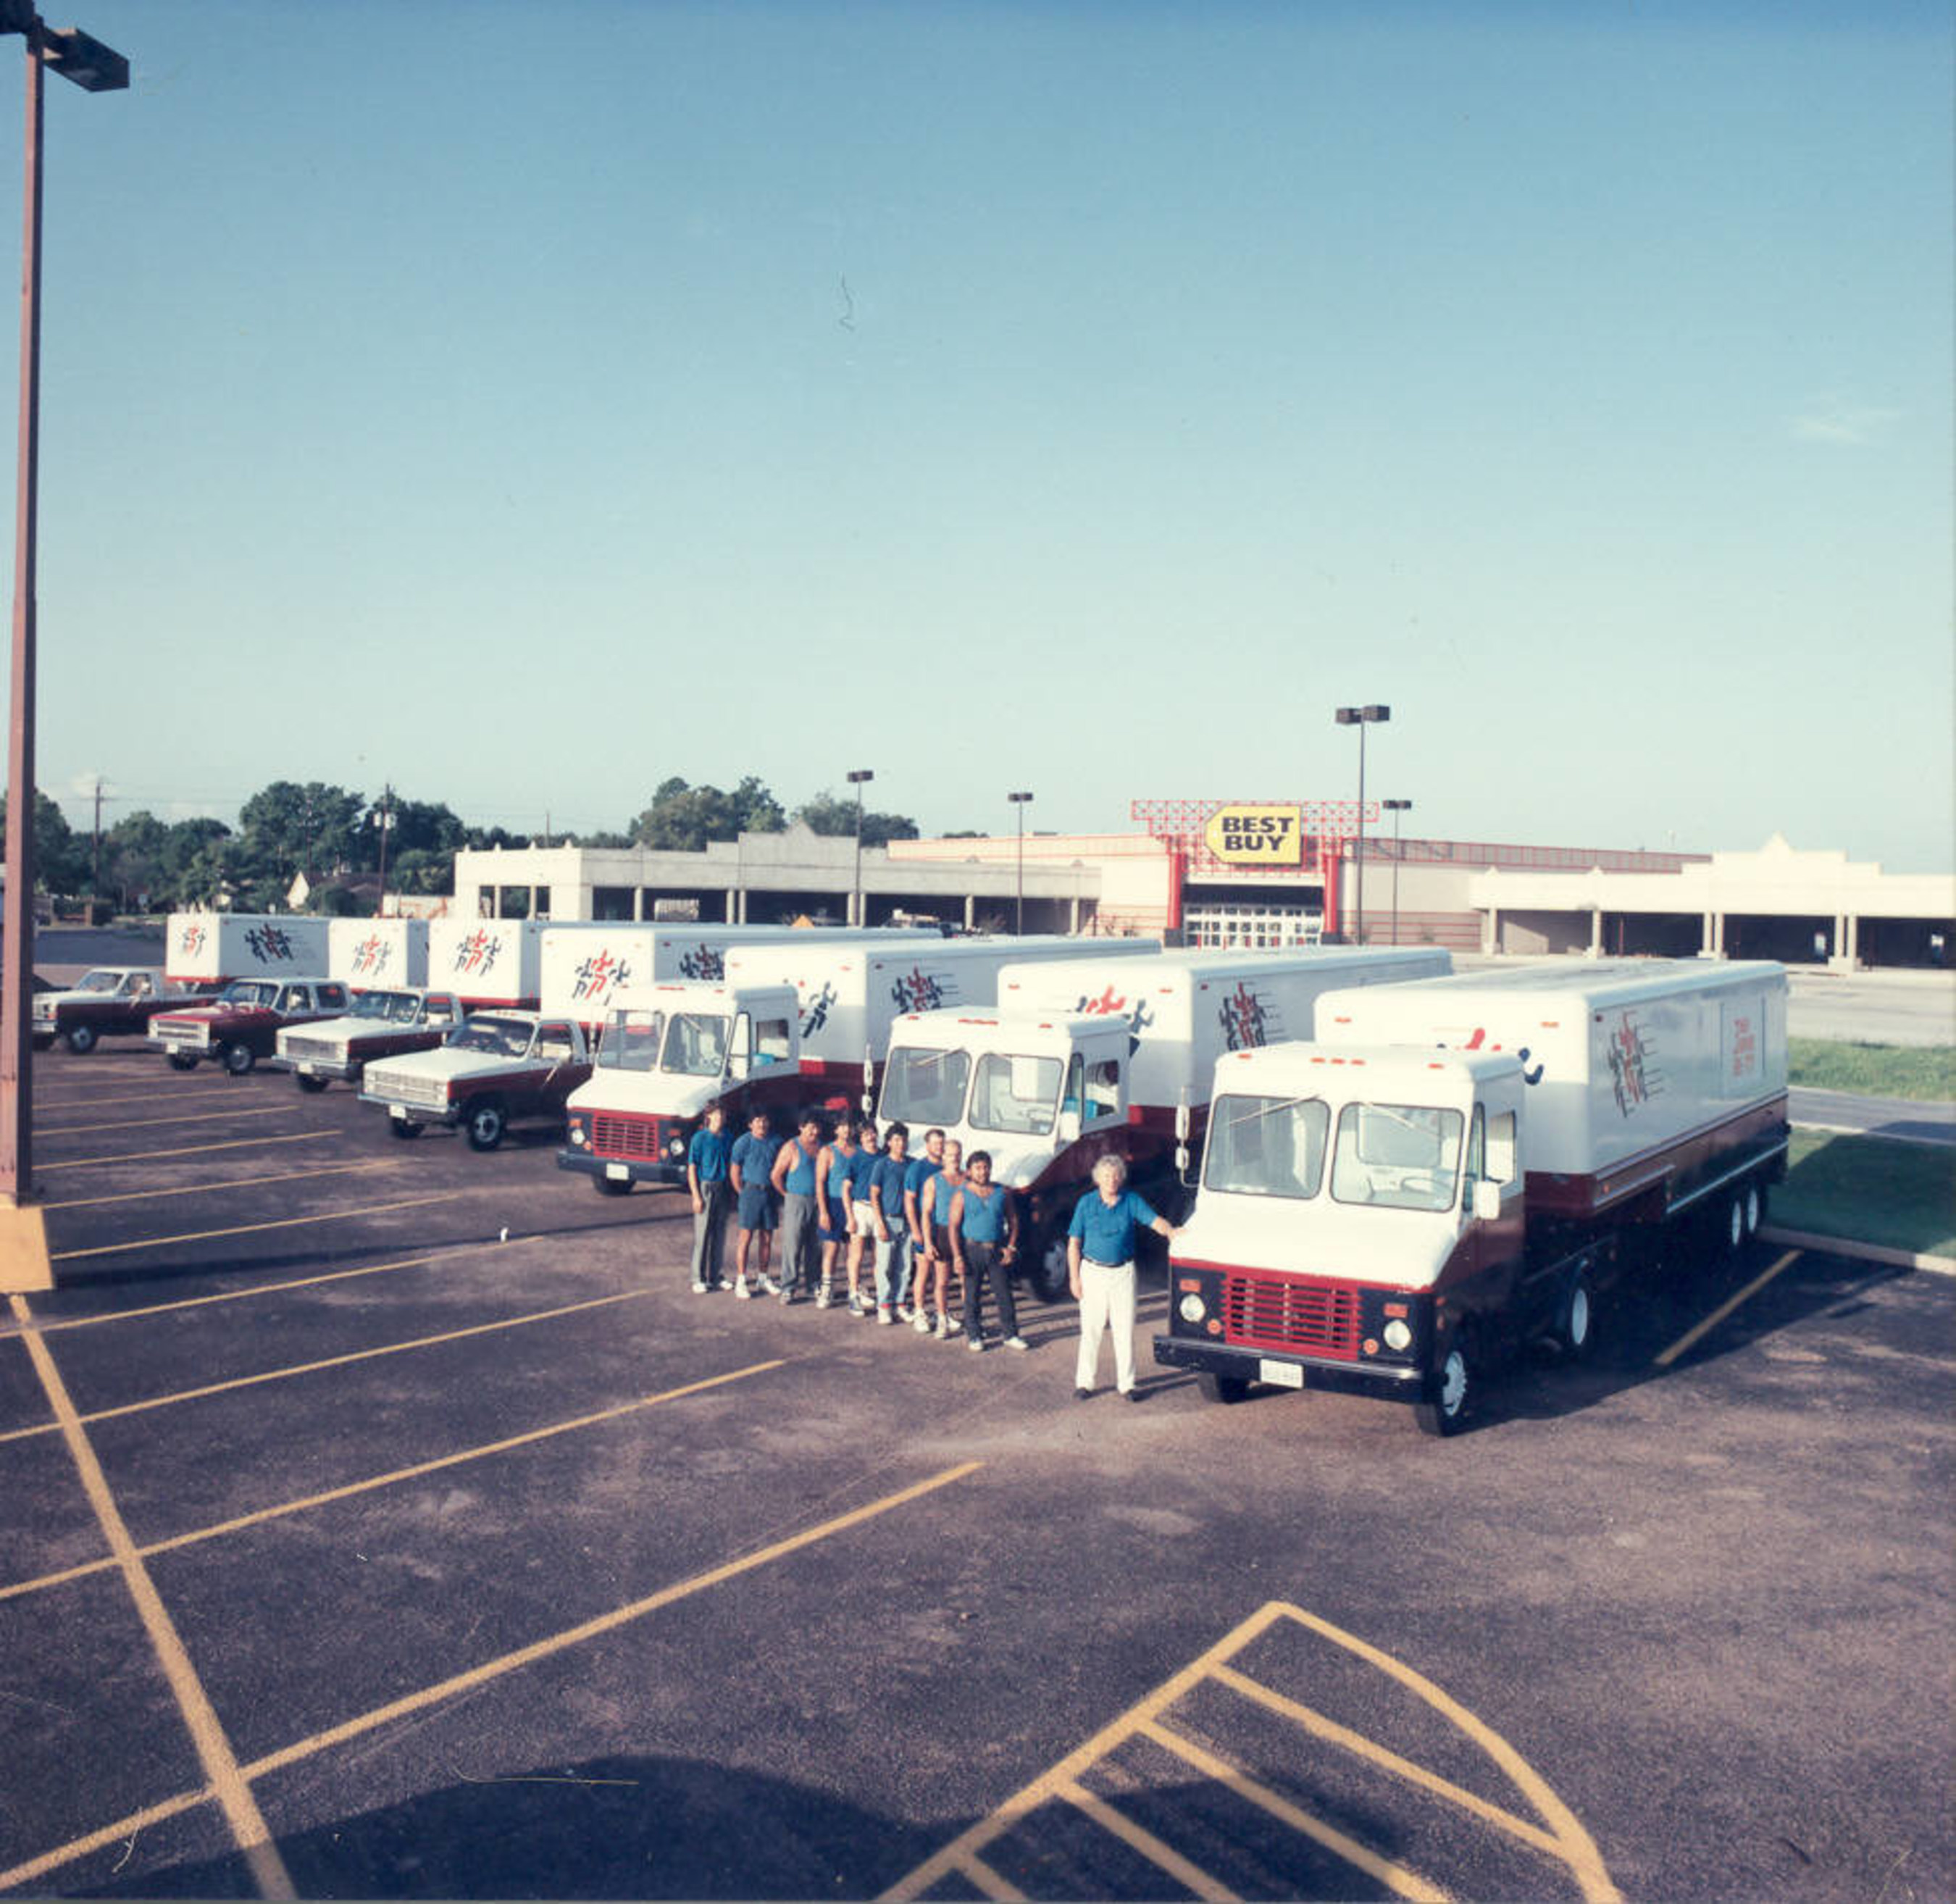 What was supposed to be a passing venture, began to blossom into a multi-truck moving company with a glowing reputation. John's dreams of business success were coming true.